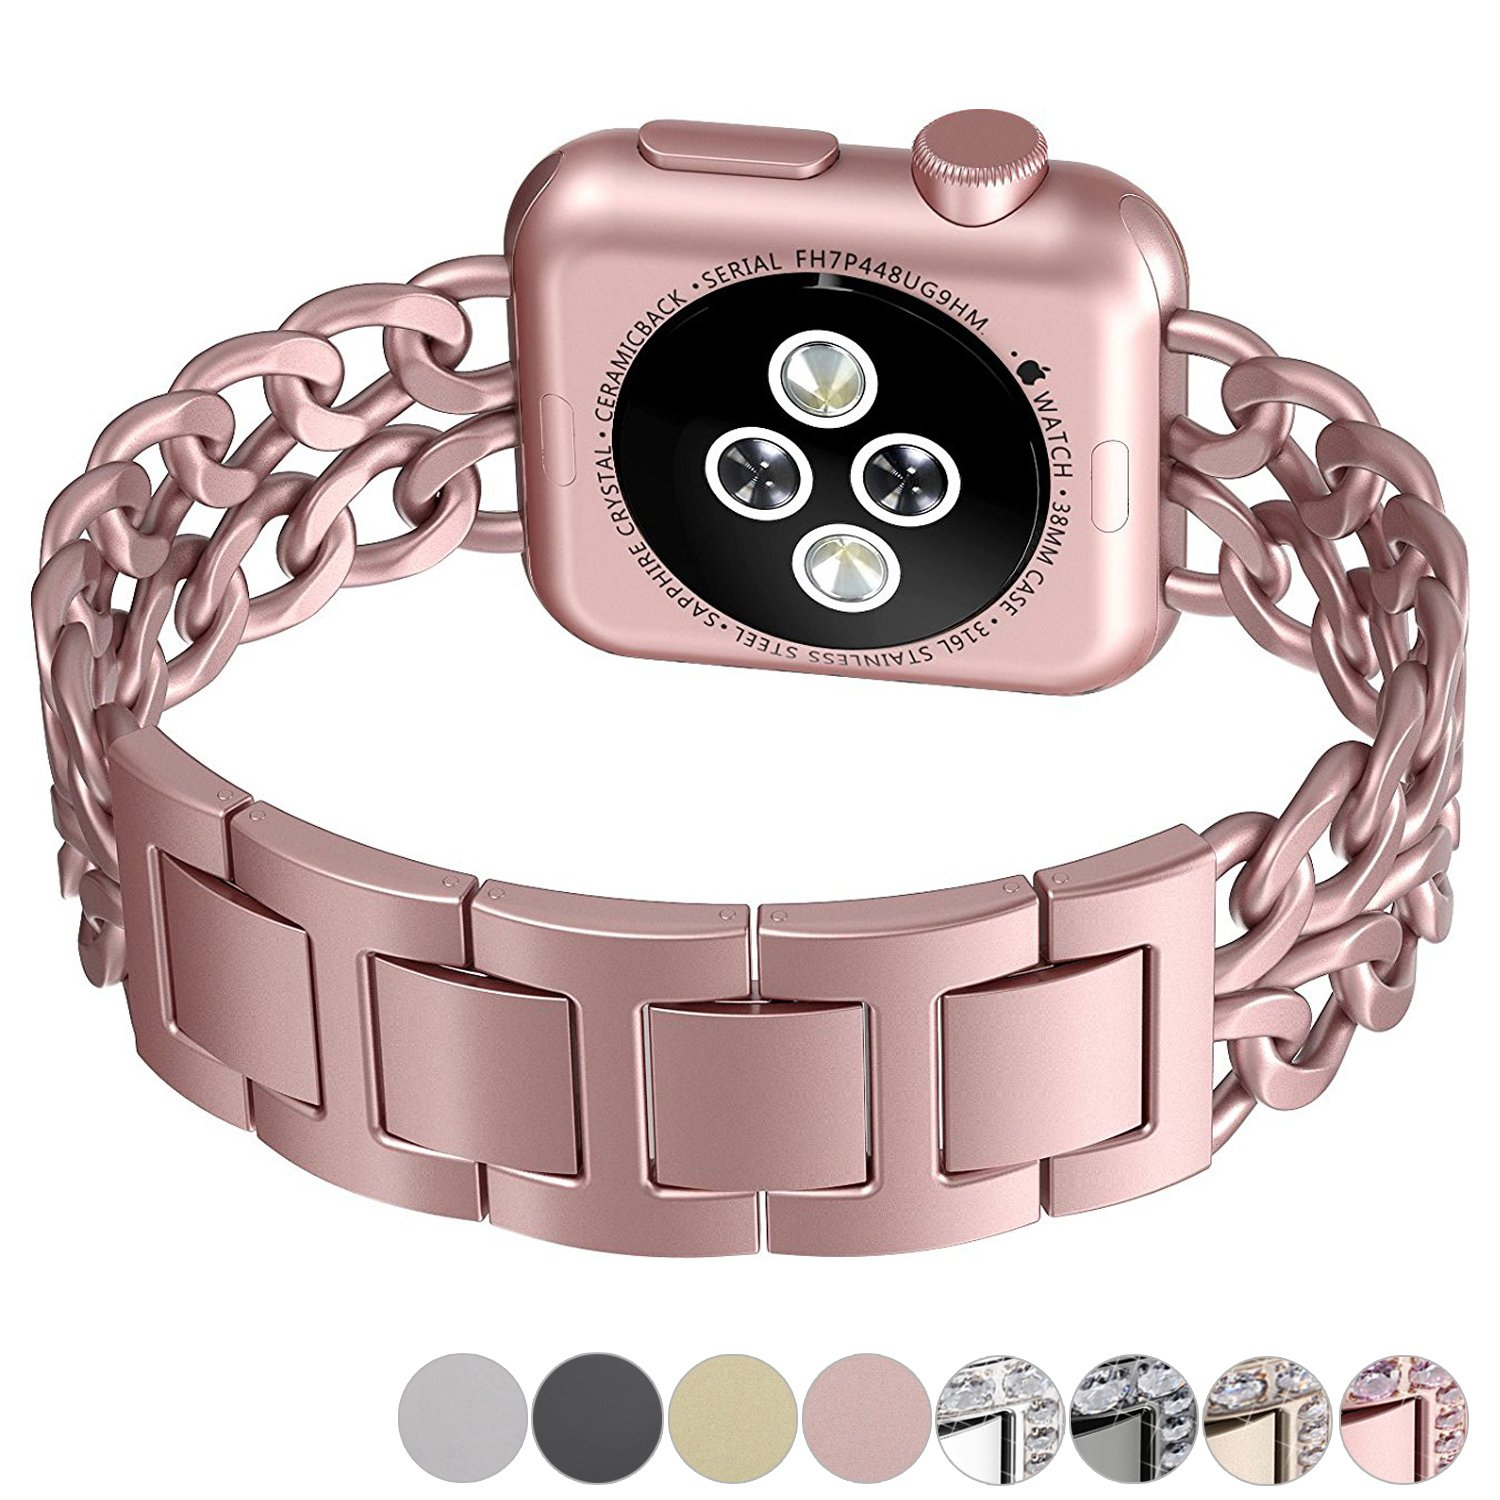 Apple Watch Band, No1seller Premium Stainless Steel Cowboy Style Bracelet Watch Band Strap for Apple Watch Series 1, Series 2